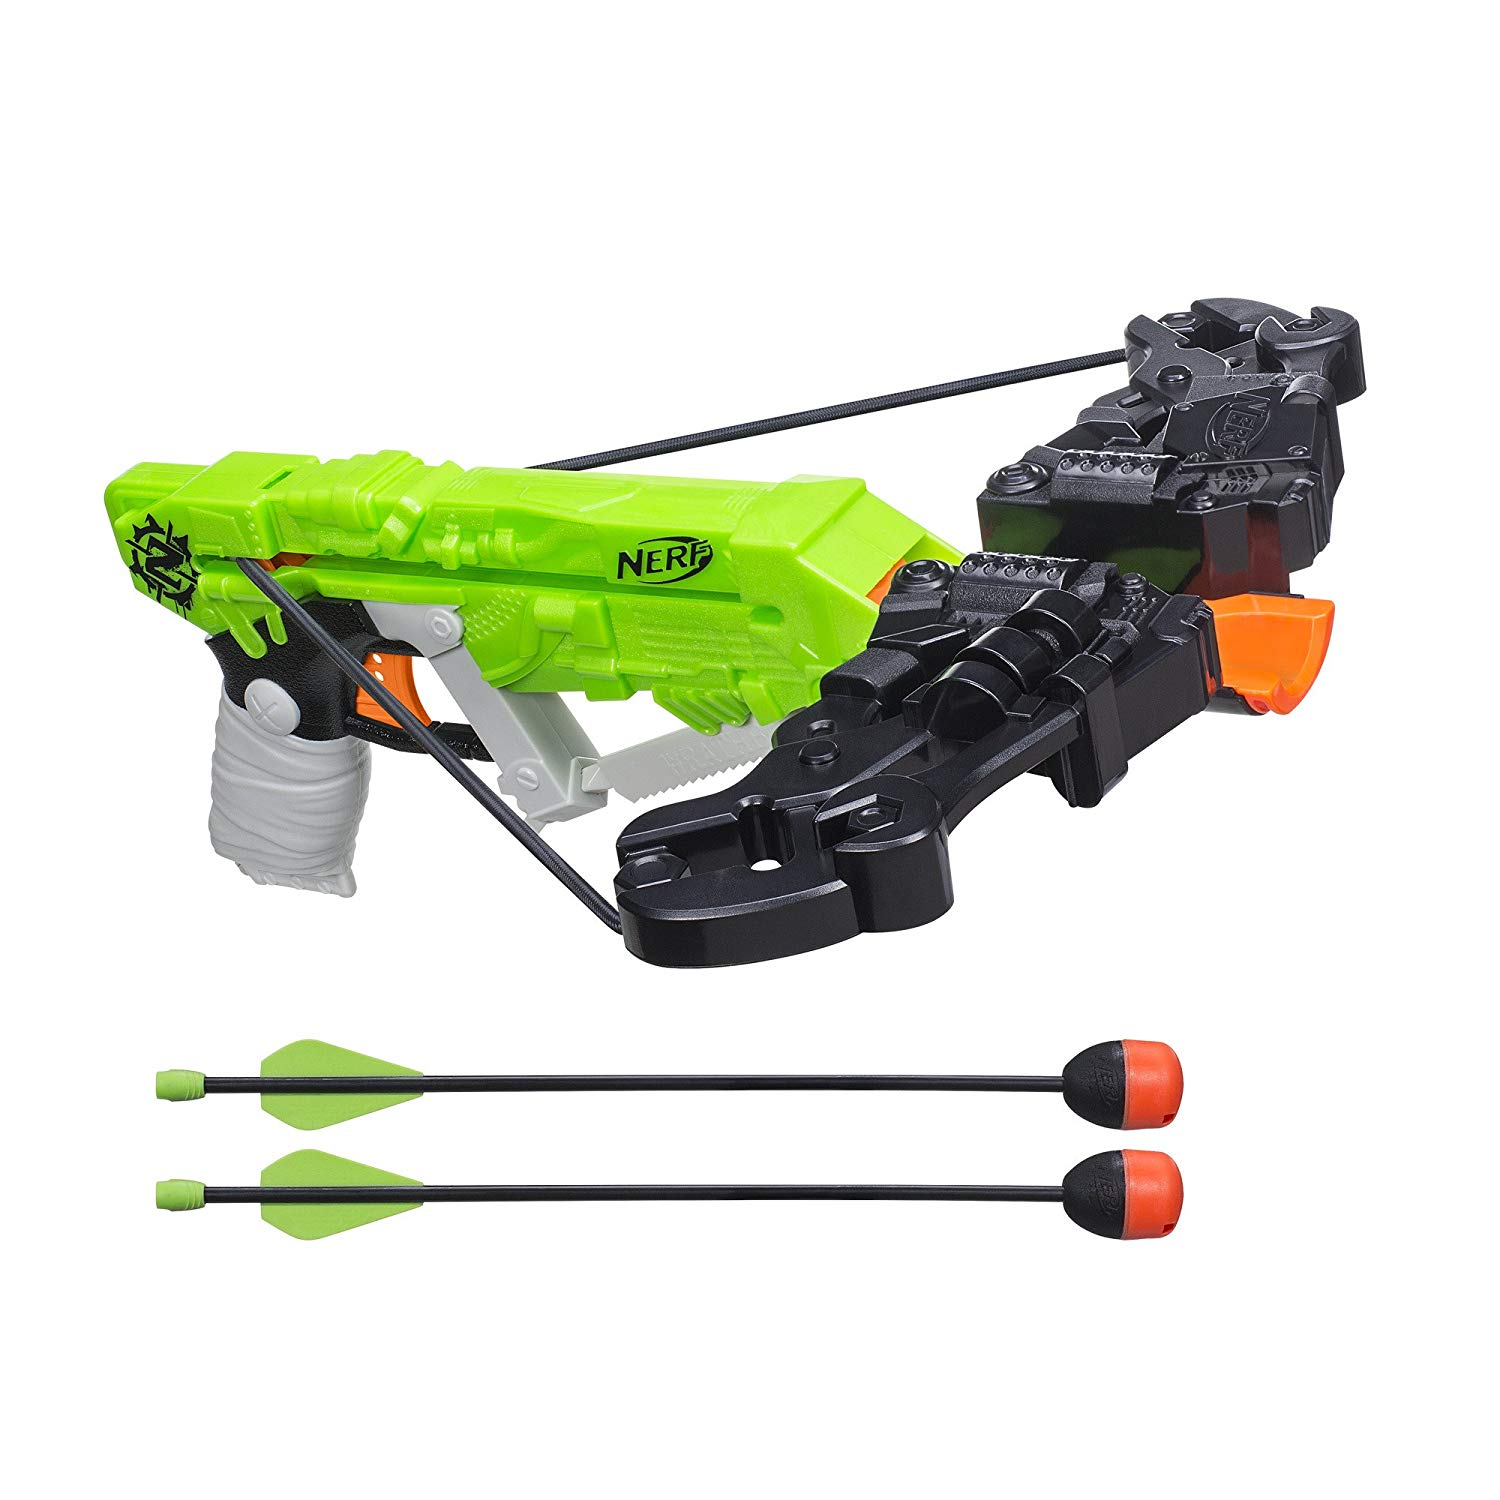 This is an image of a green nerf crossbow toy gun for kids.